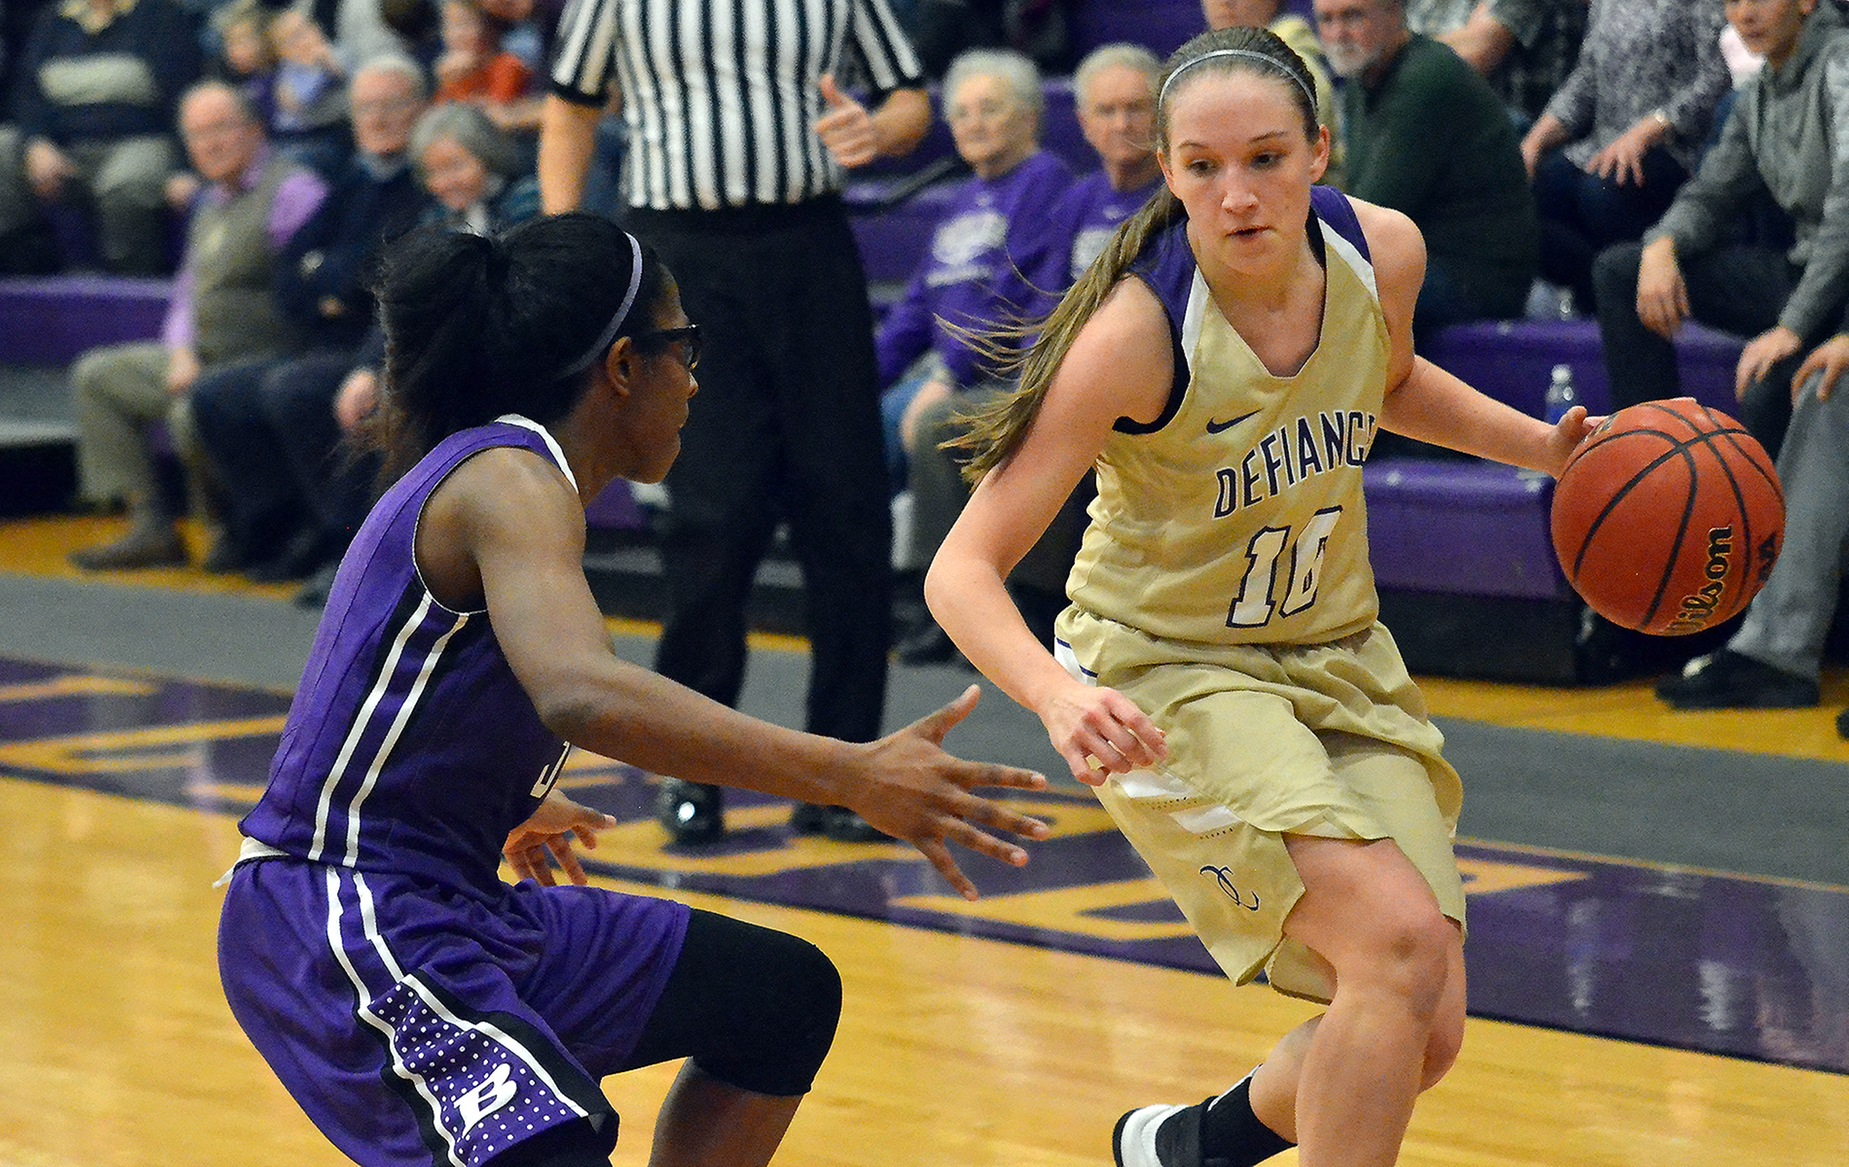 Yellow Jackets Lose to Pioneers